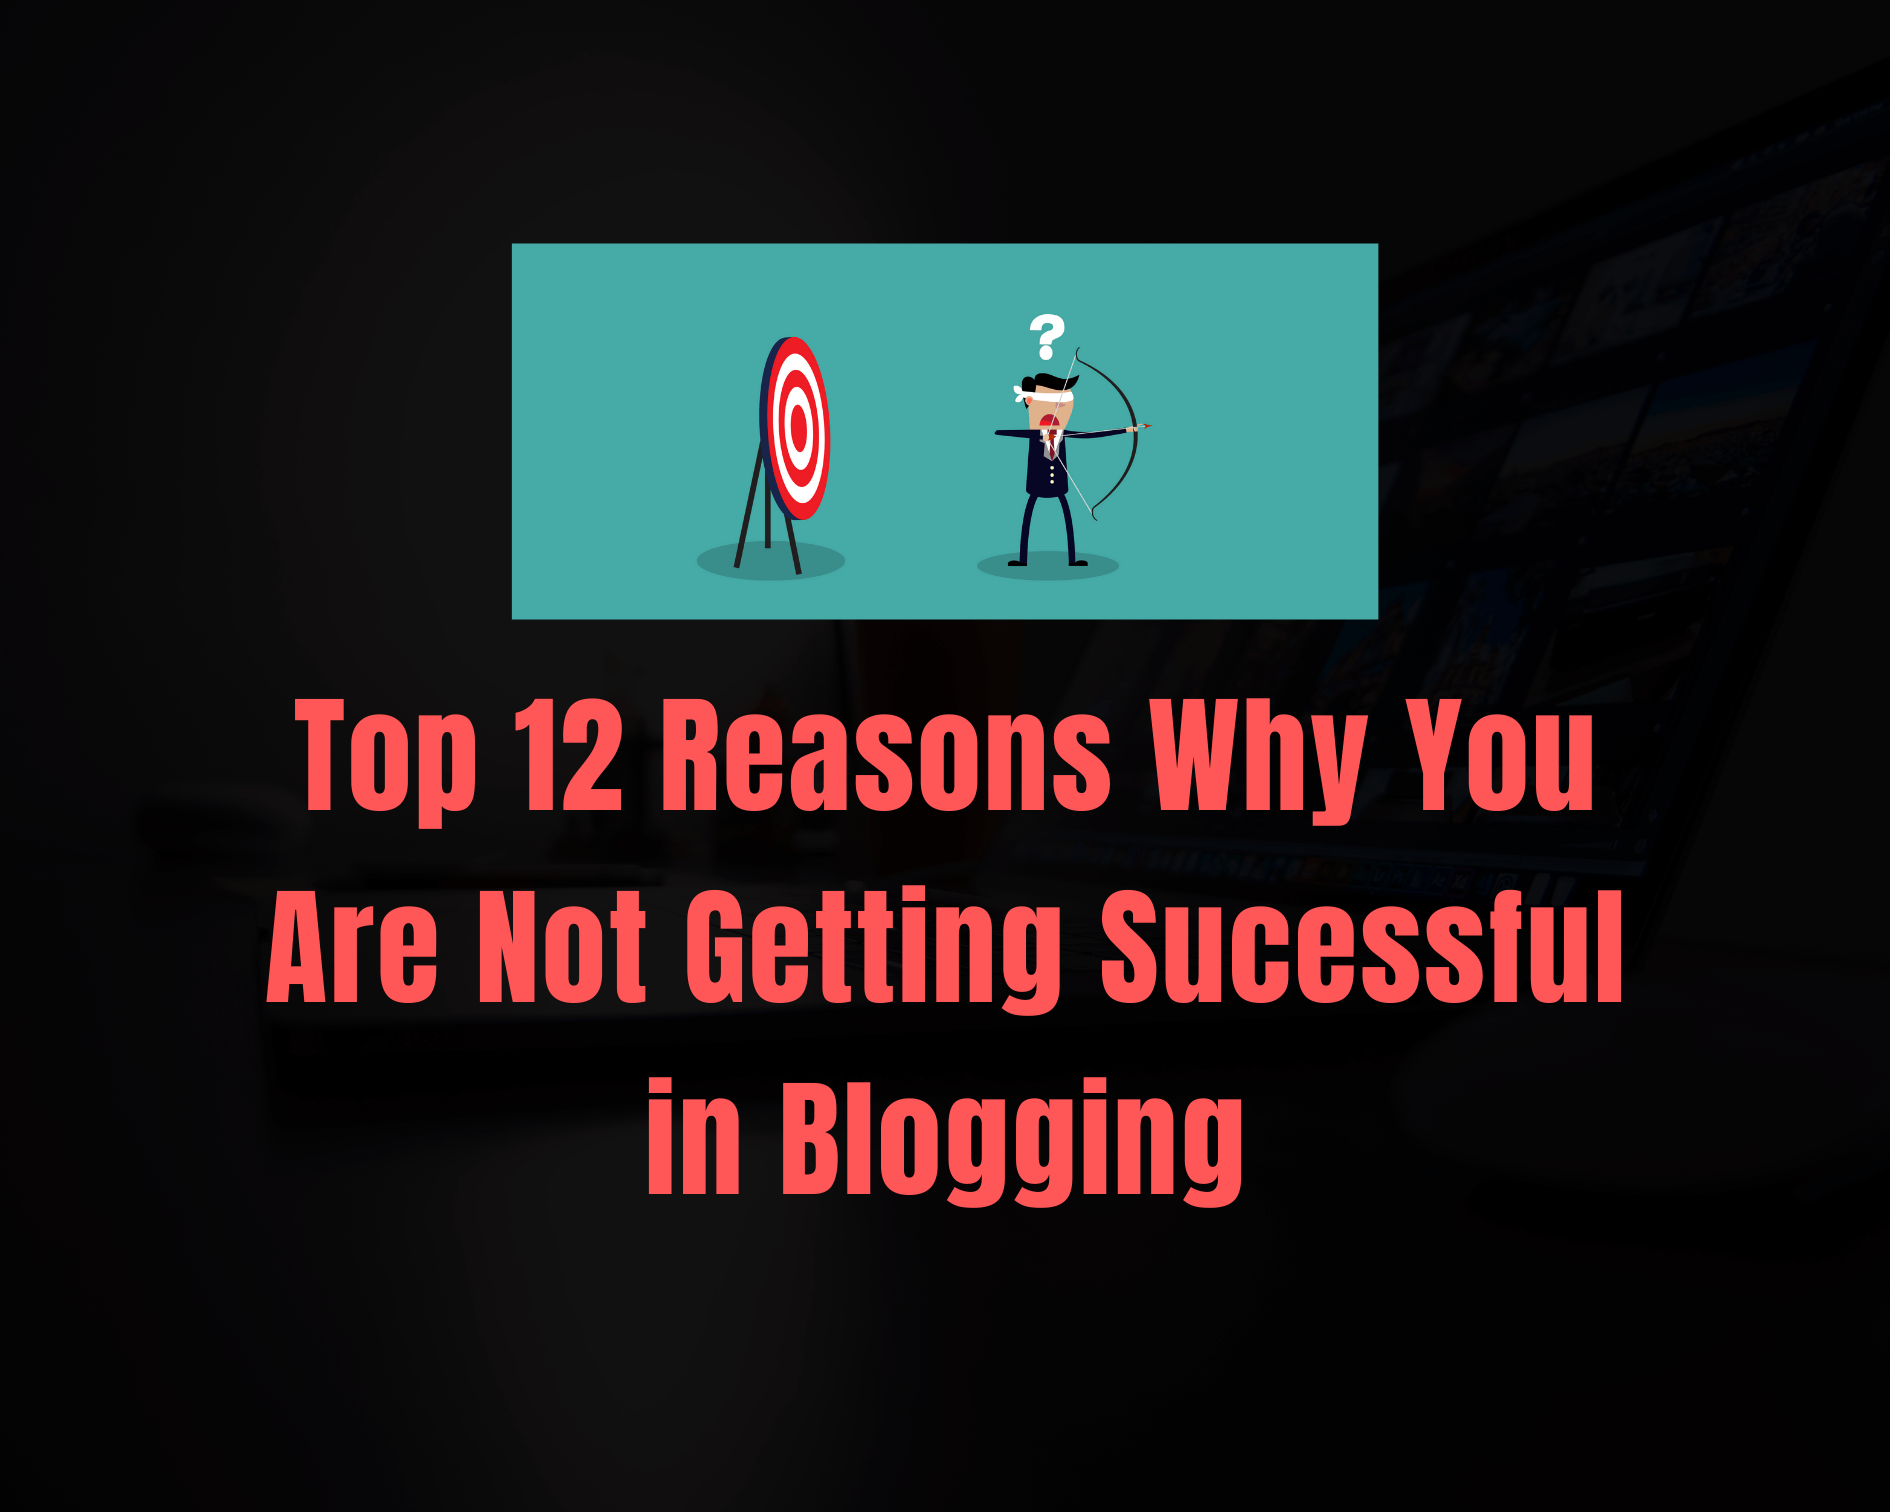 Top reasons why not getting sucessful in blogging